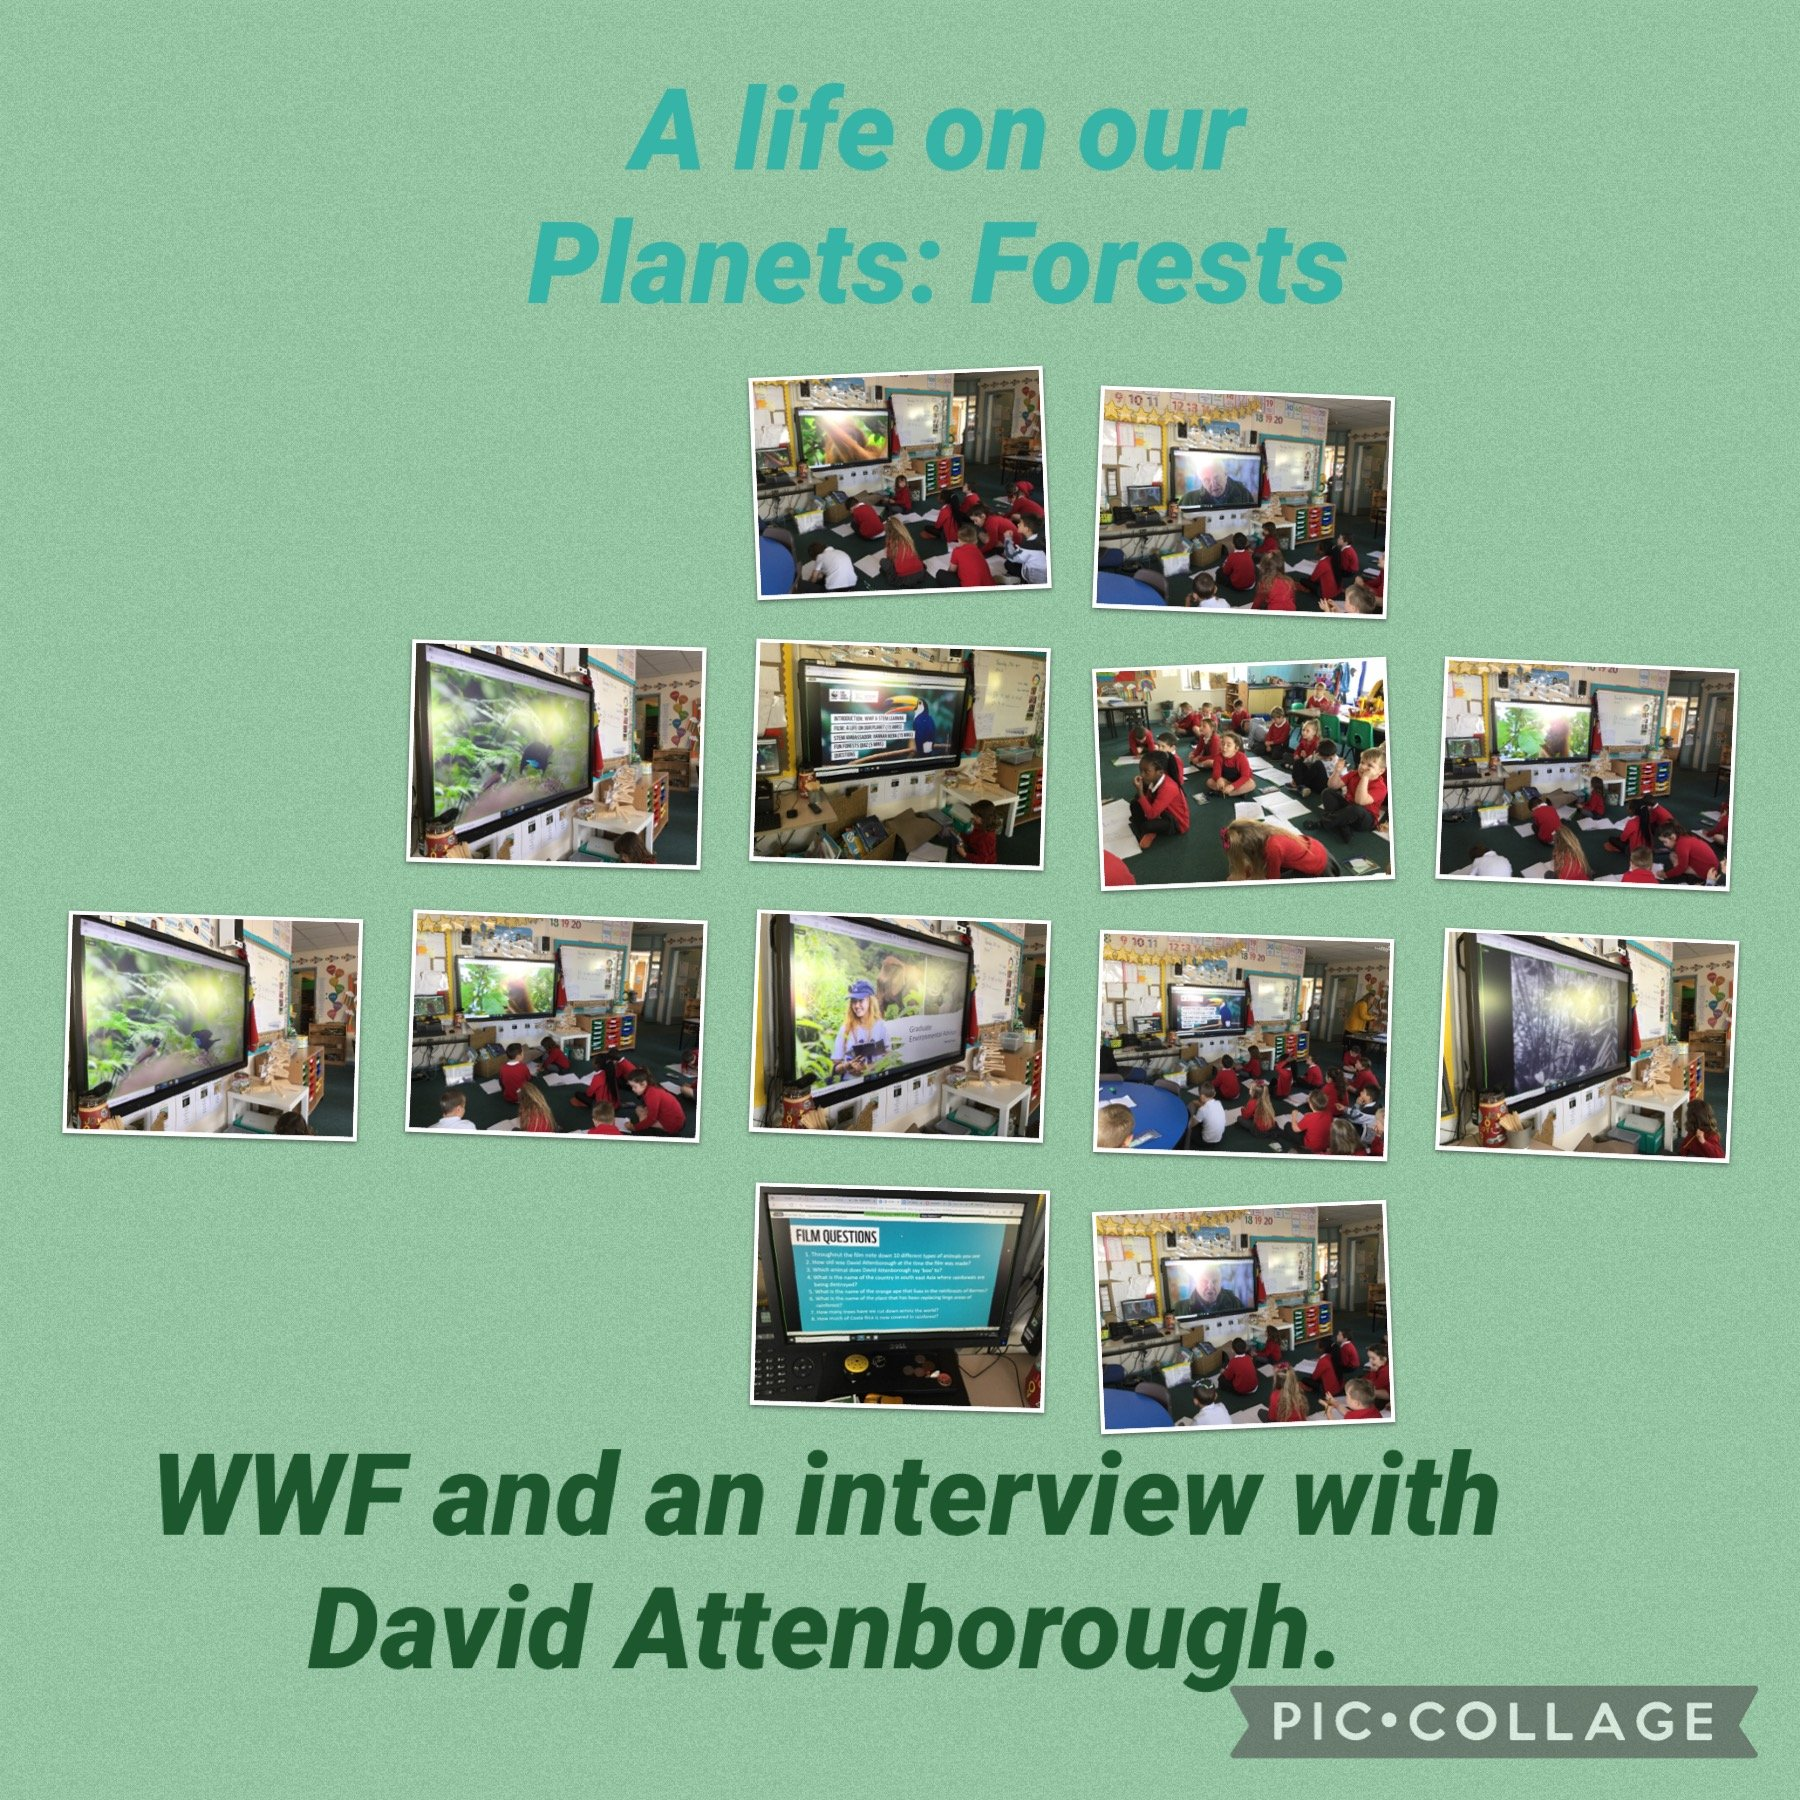 WWF and an Interview with David Attenborough.